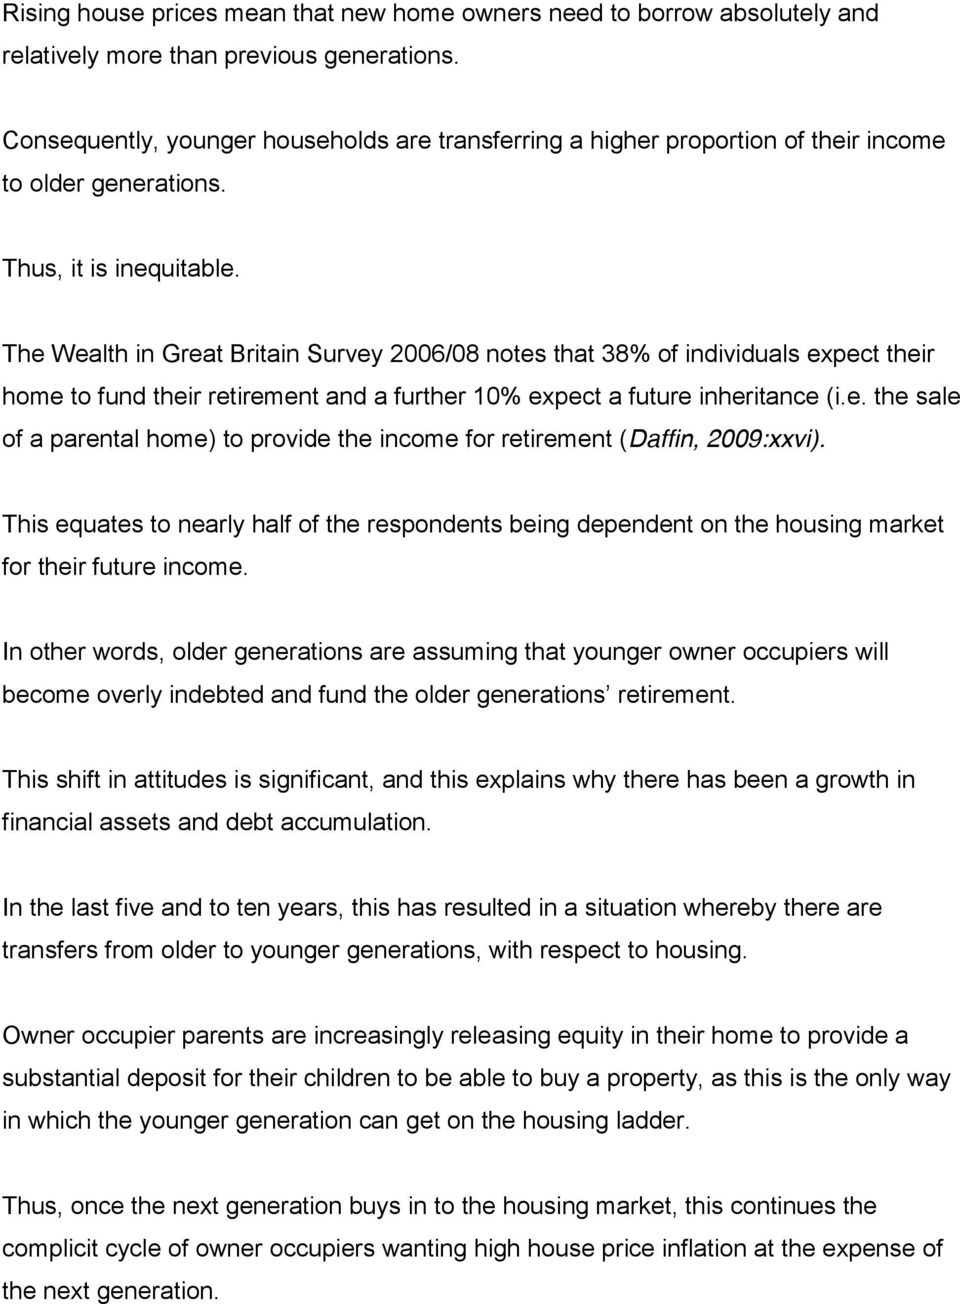 The Wealth in Great Britain Survey 2006/08 notes that 38% of individuals expect their home to fund their retirement and a further 10% expect a future inheritance (i.e. the sale of a parental home) to provide the income for retirement (Daffin, 2009:xxvi).